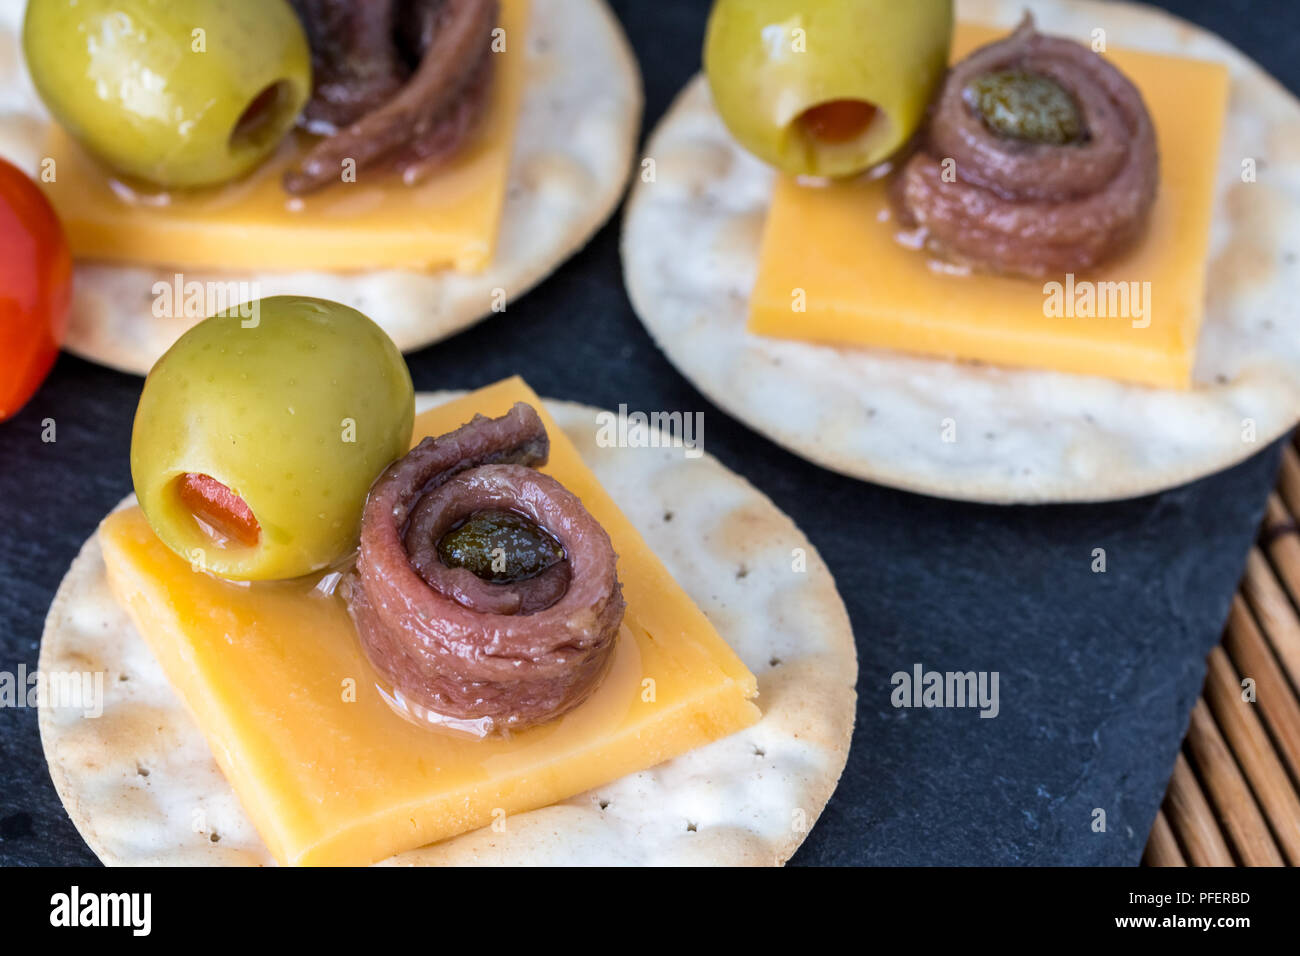 Anchovy on crackers with stuffed olives - Appetizer background with selective focus - Stock Image